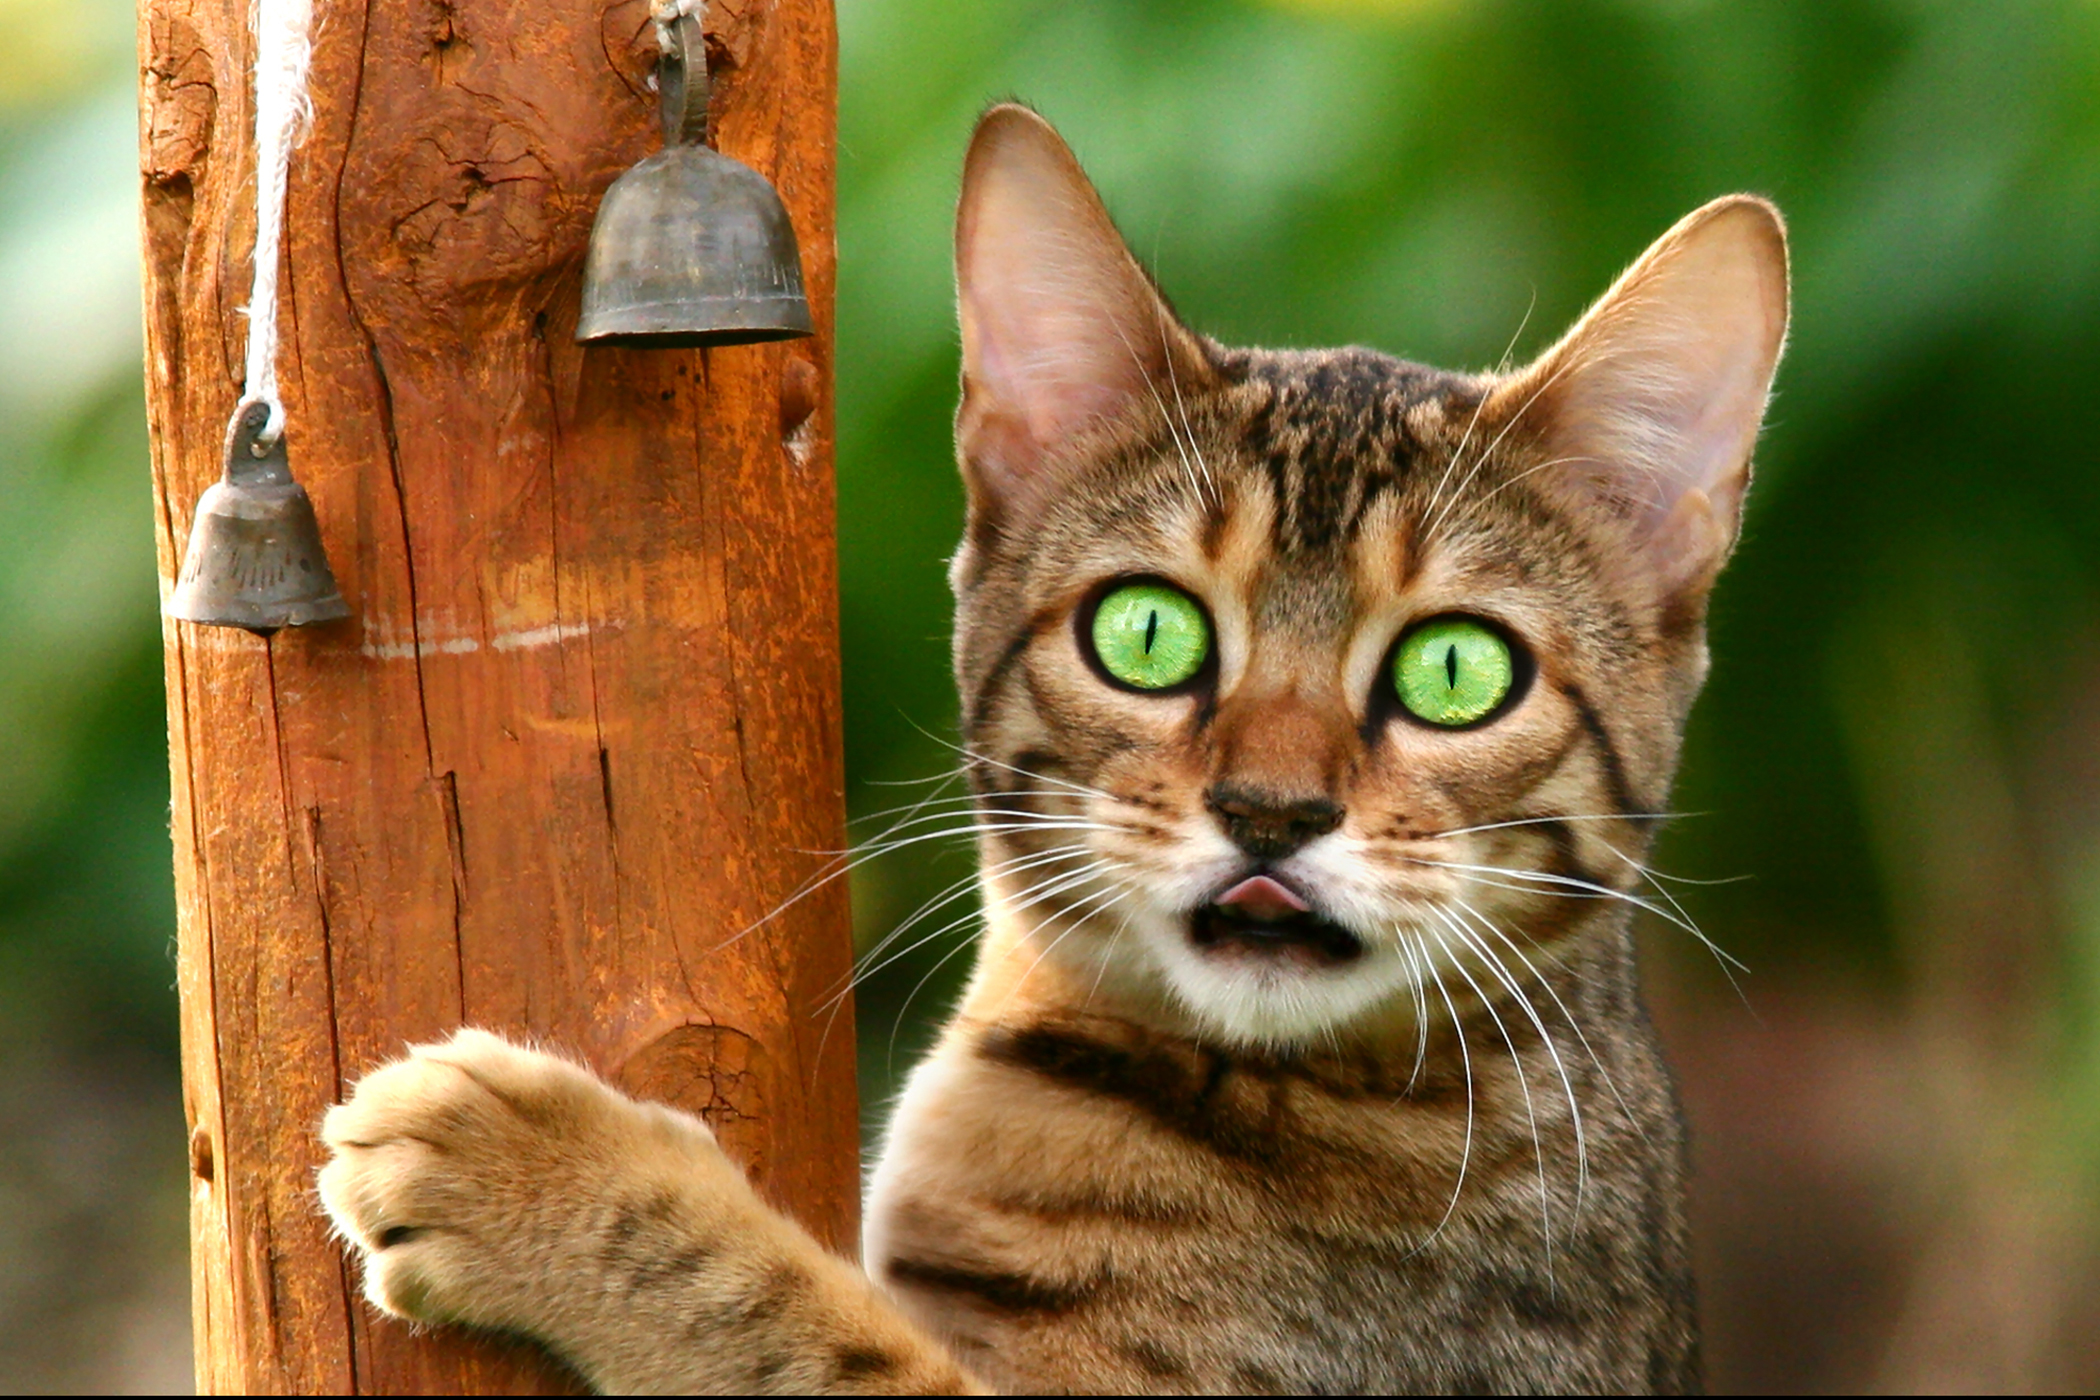 Inflammation of the Urethra in Cats